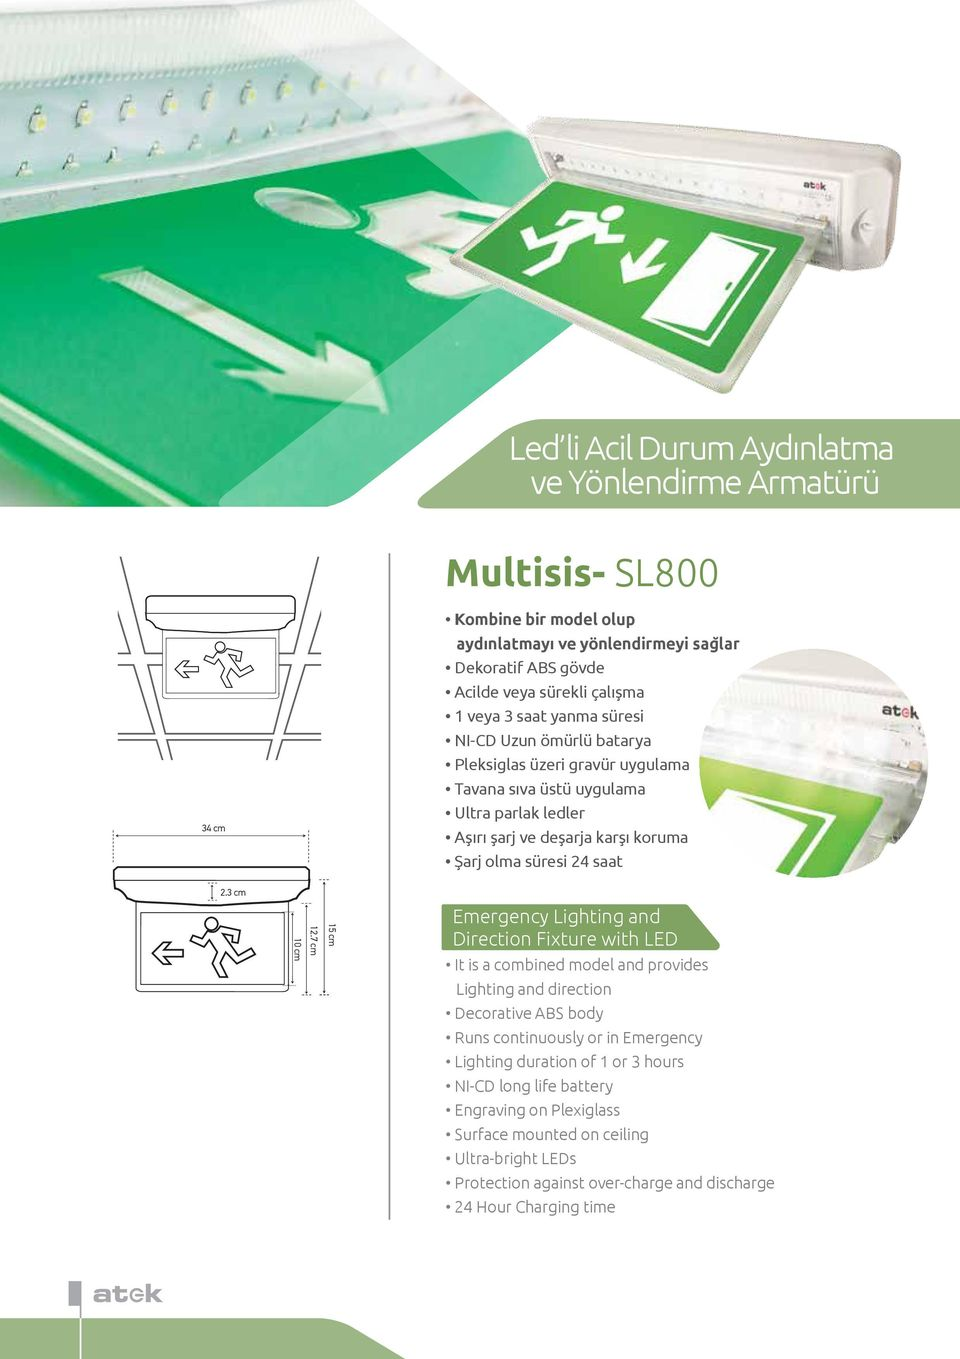 gravür uygulama Tavana sıva üstü uygulama Emergency Lighting and Direction Fixture with LED